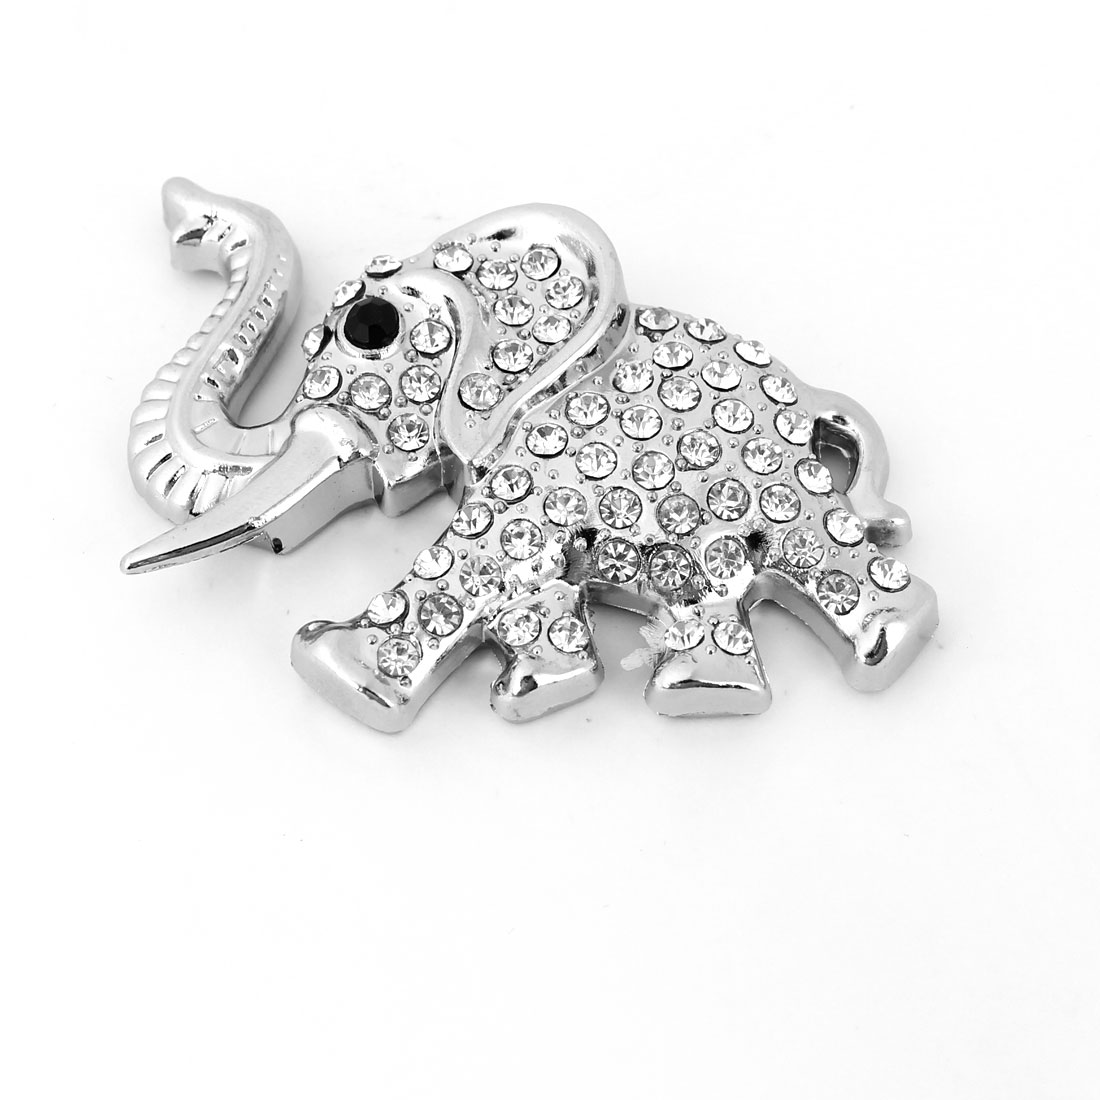 Metal 3D Silver Tone Elephant Shape Sticker Badge Emblem for Auto Decor